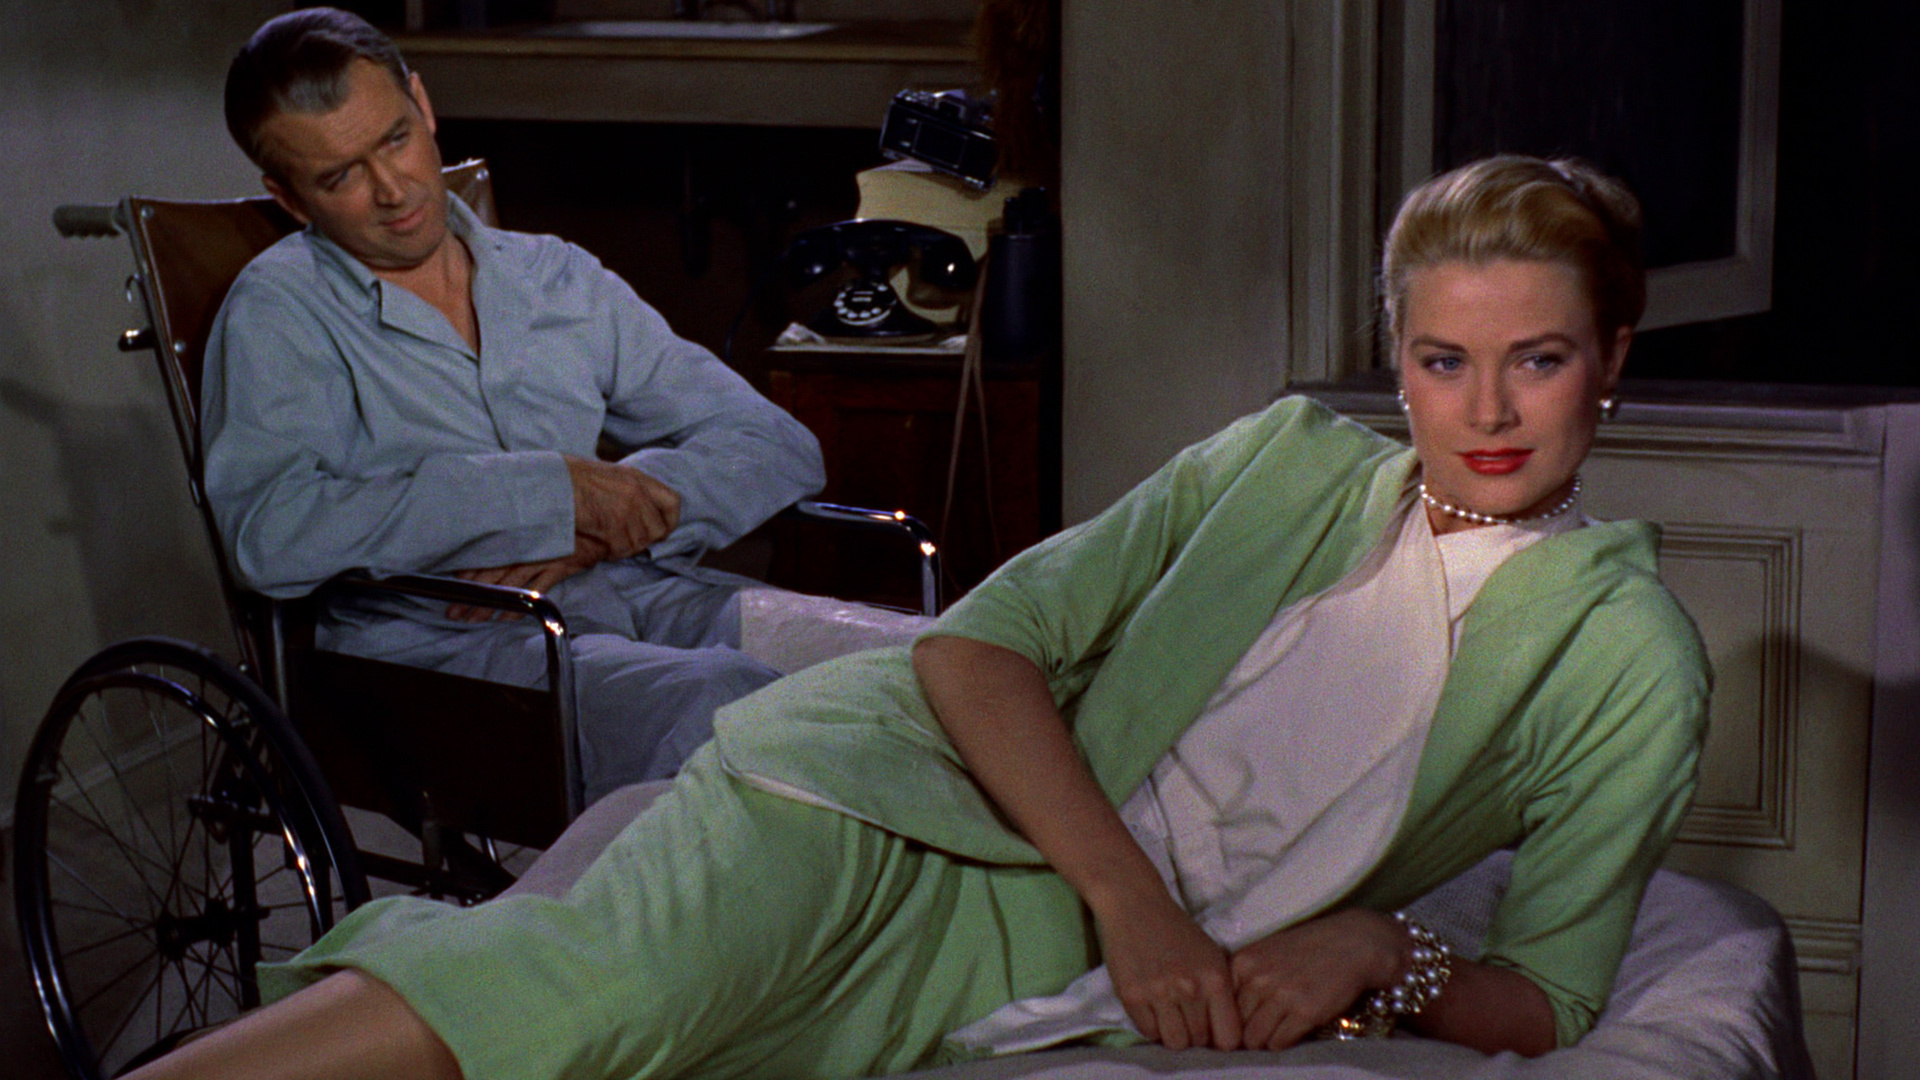 an analysis of marriage anxieties and voyeurism in rear window by alfred hitchcock